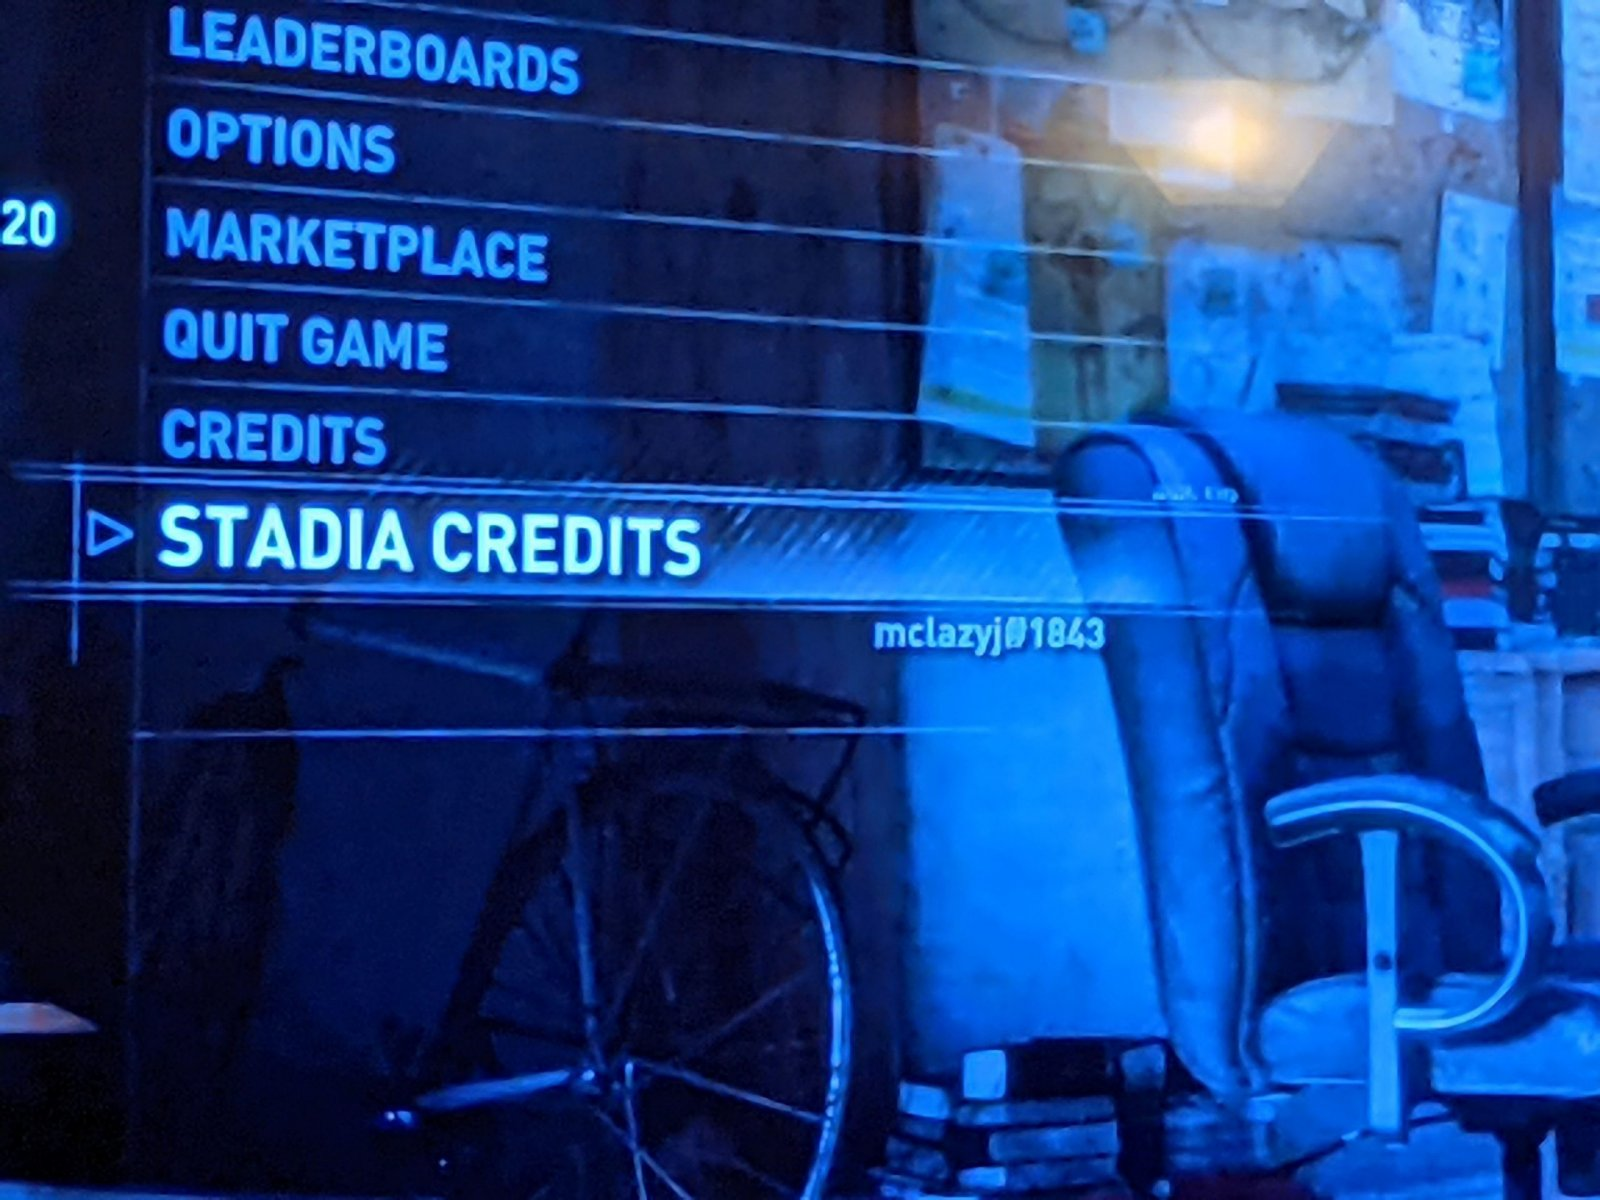 Showing the Stadia Credits